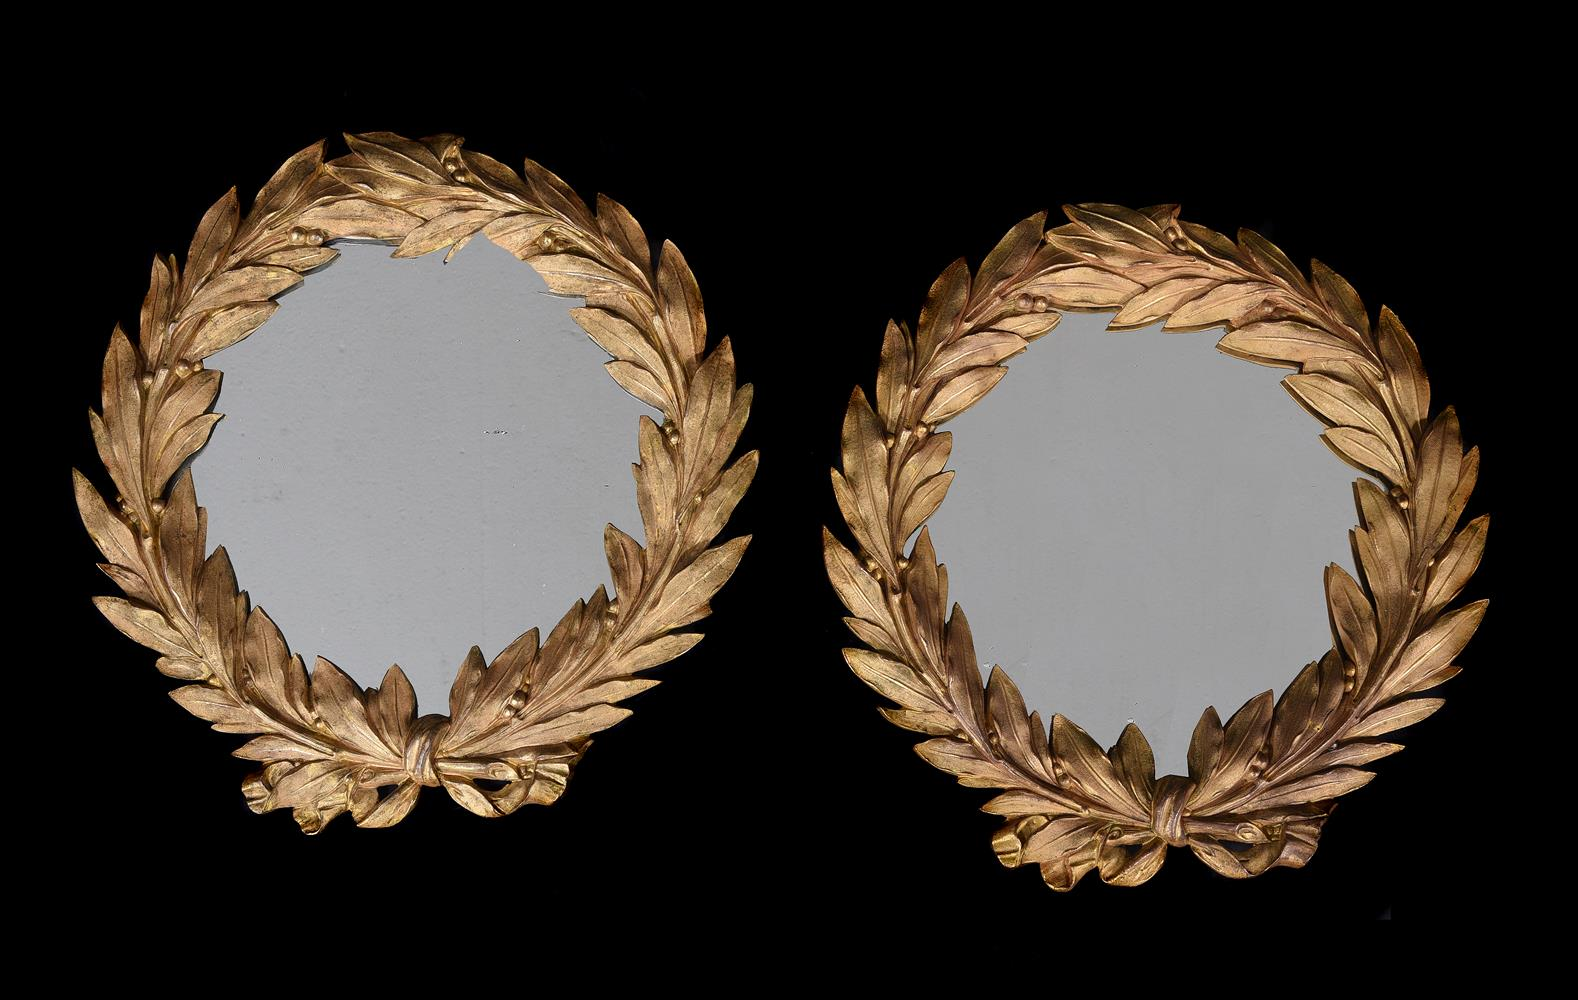 A PAIR OF CONTINENTAL ORMOLU WALL MIRRORS, PROBABLY FRENCH, LATE 19TH/ EARLY 20TH CENTURY